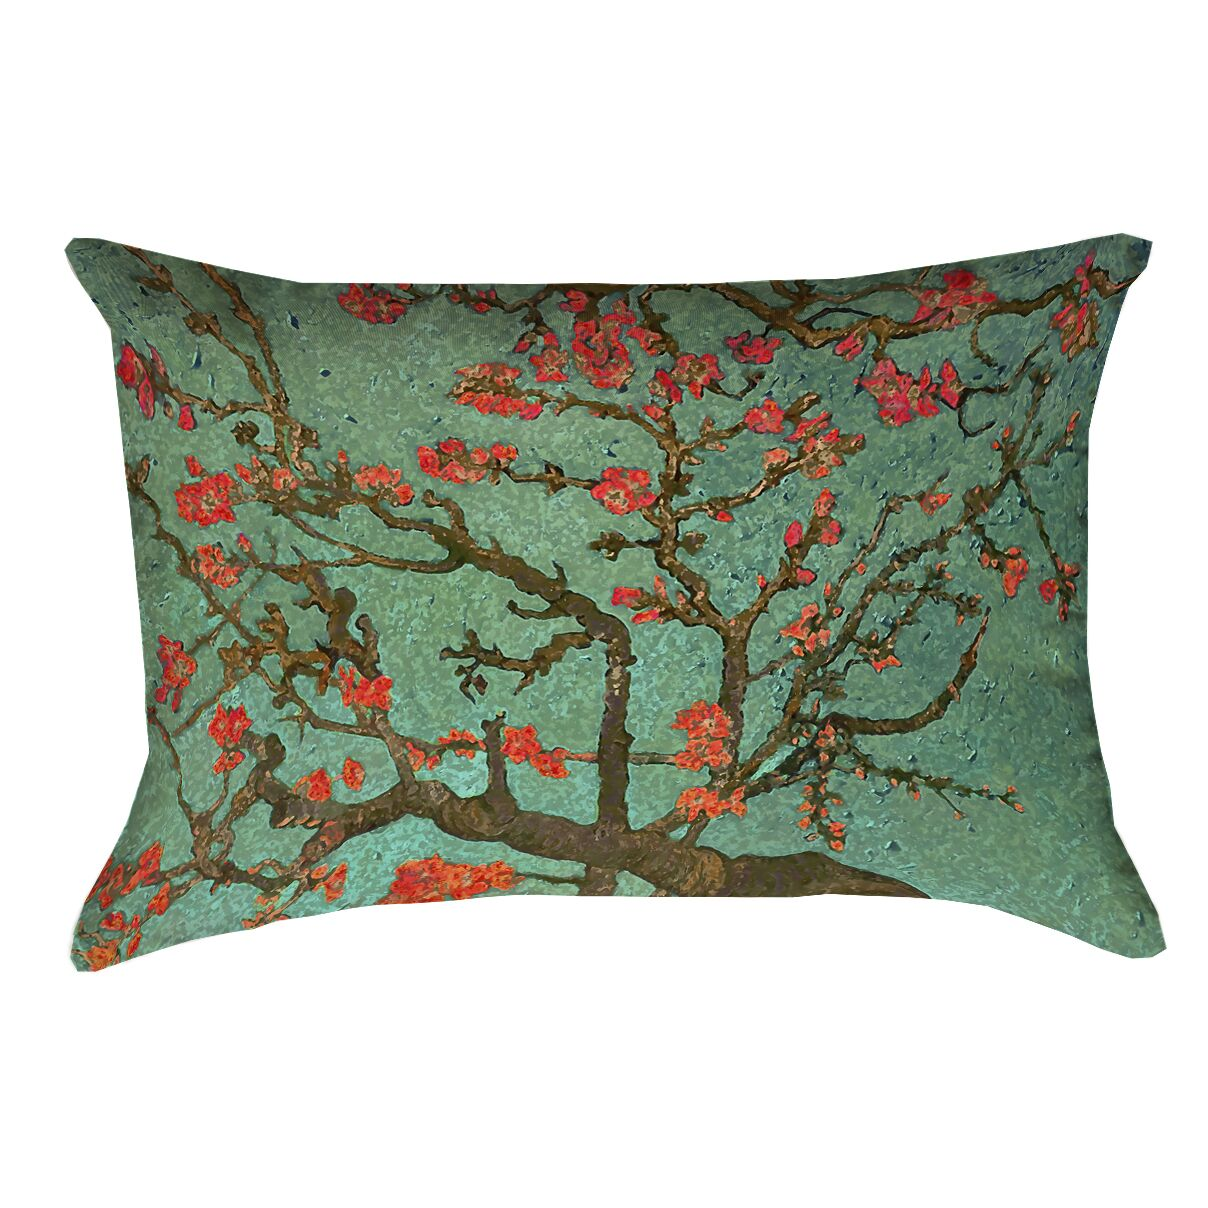 Lei Almond Blossom Pillow Cover with Zipper Color: Green/Red